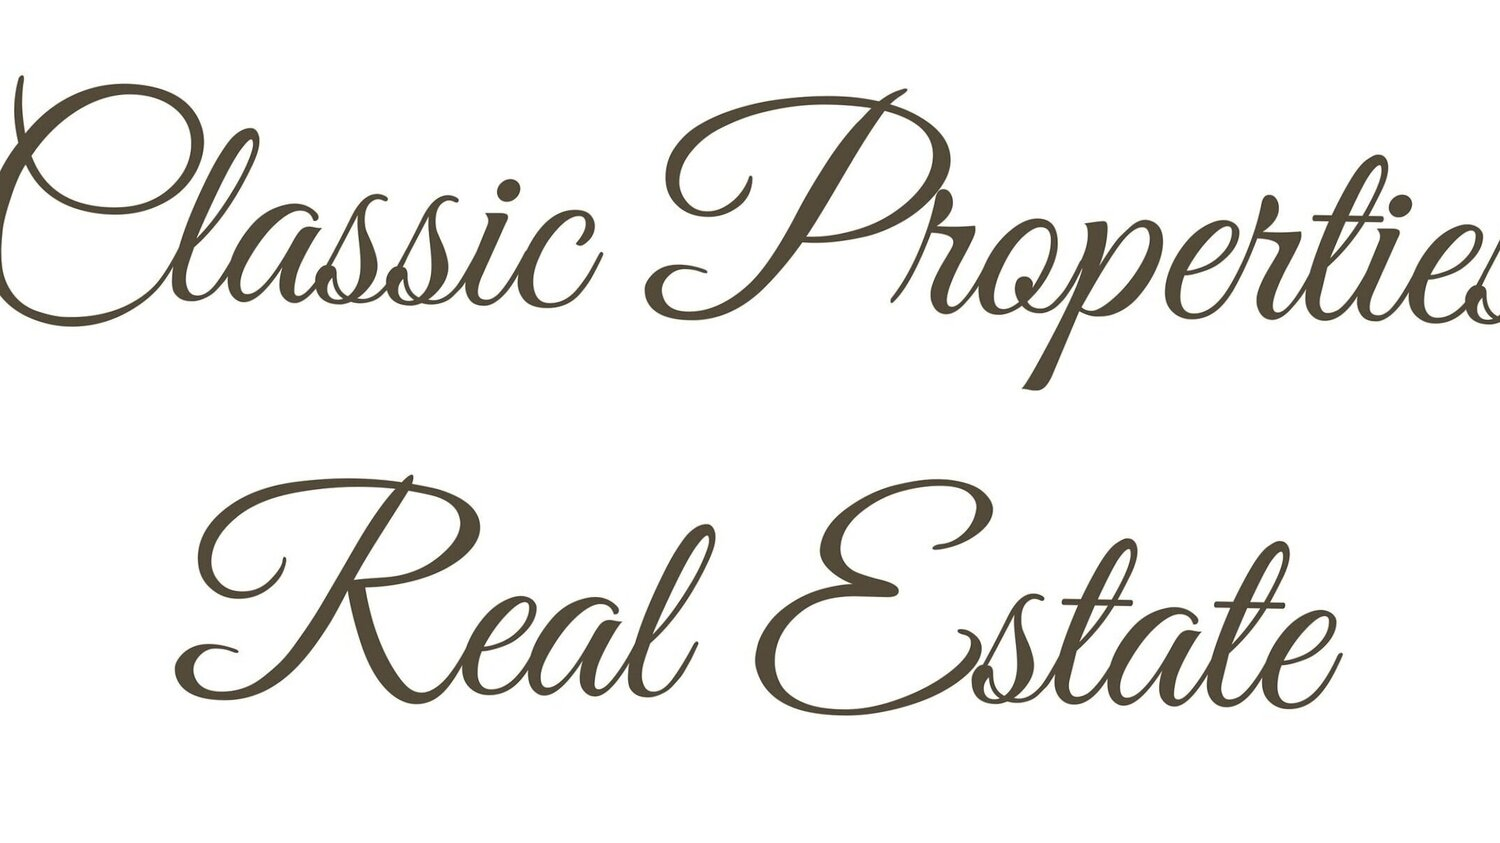 Classic Properties Real Estate